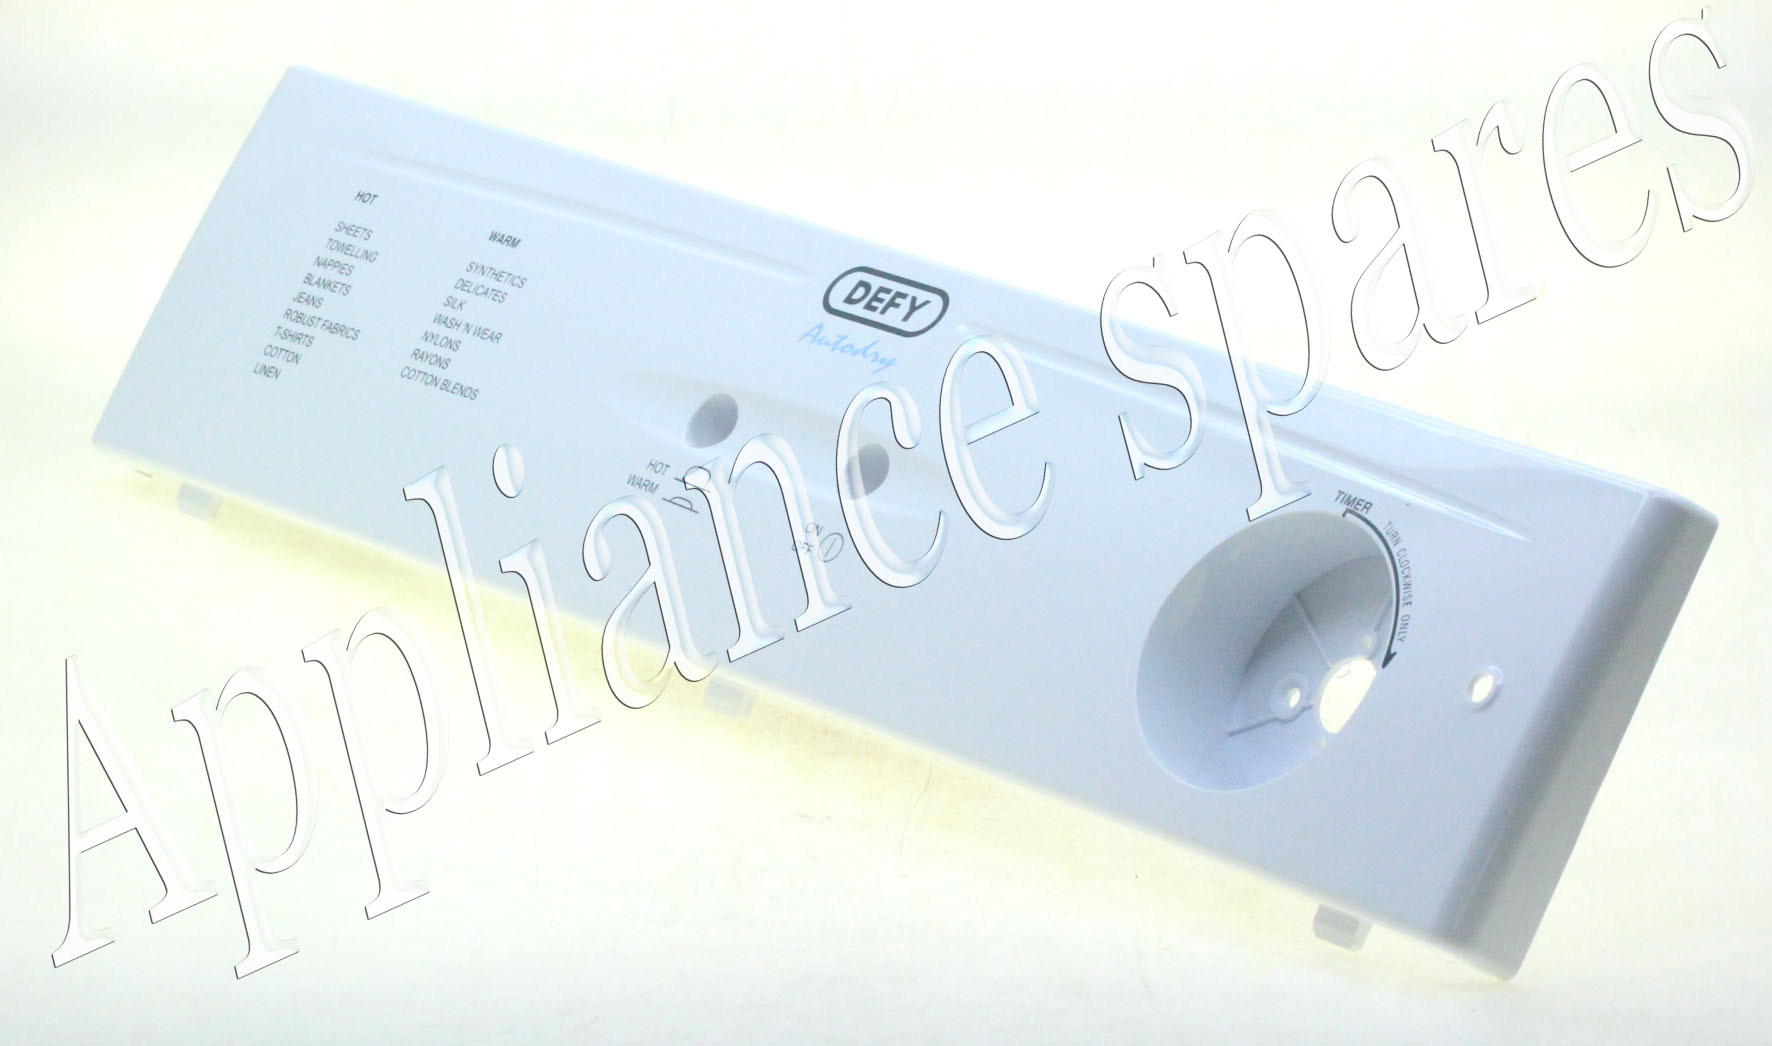 white knight tumble dryer heater element wiring diagram for a trailer plug 7 pin defy control panel lategan and van